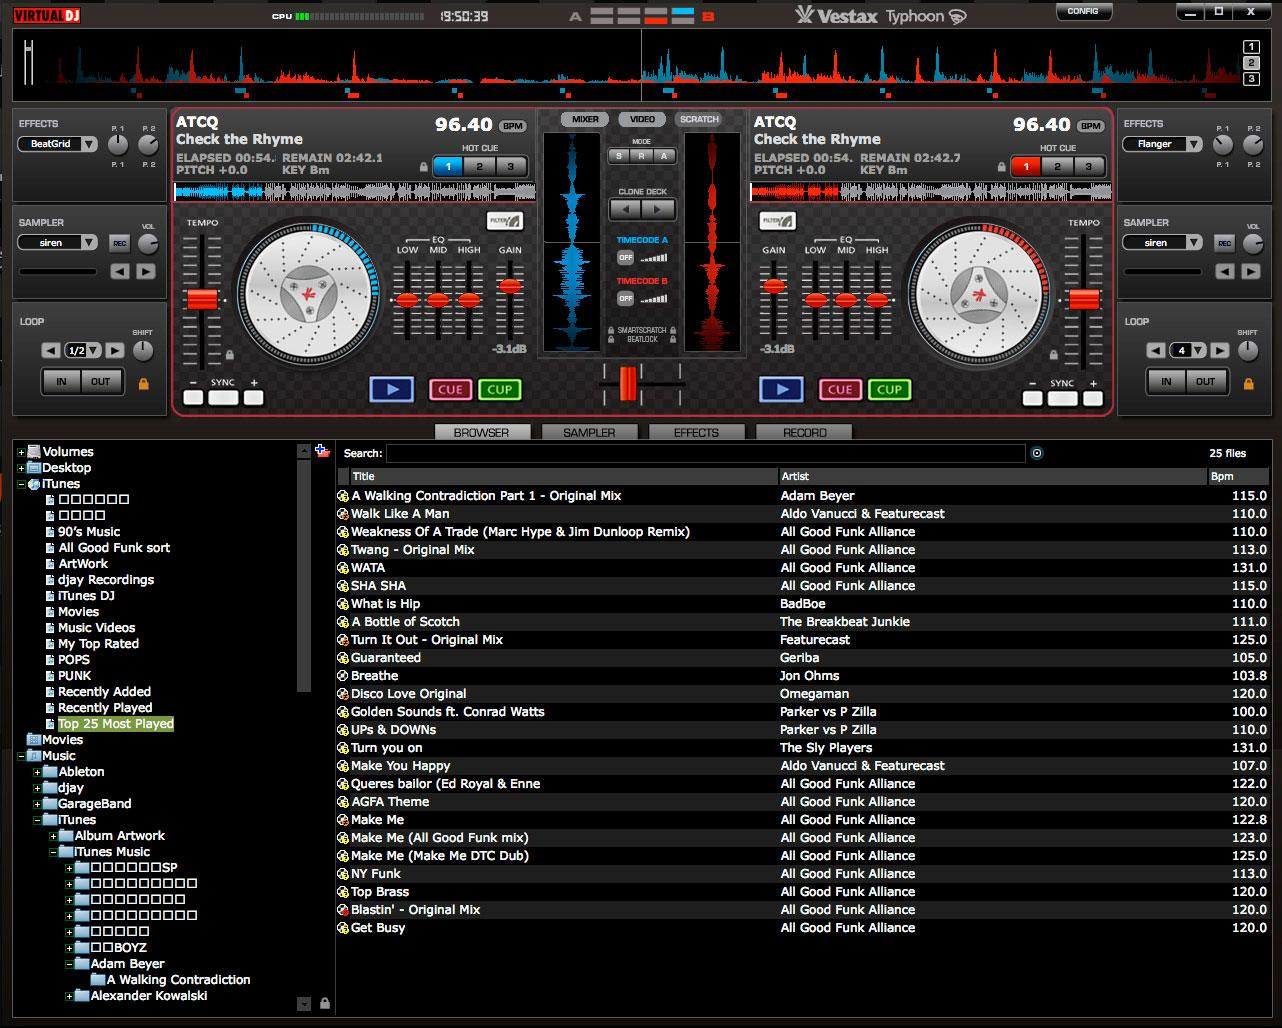 Vestax Typhoon Virtual Dj Mapping Download